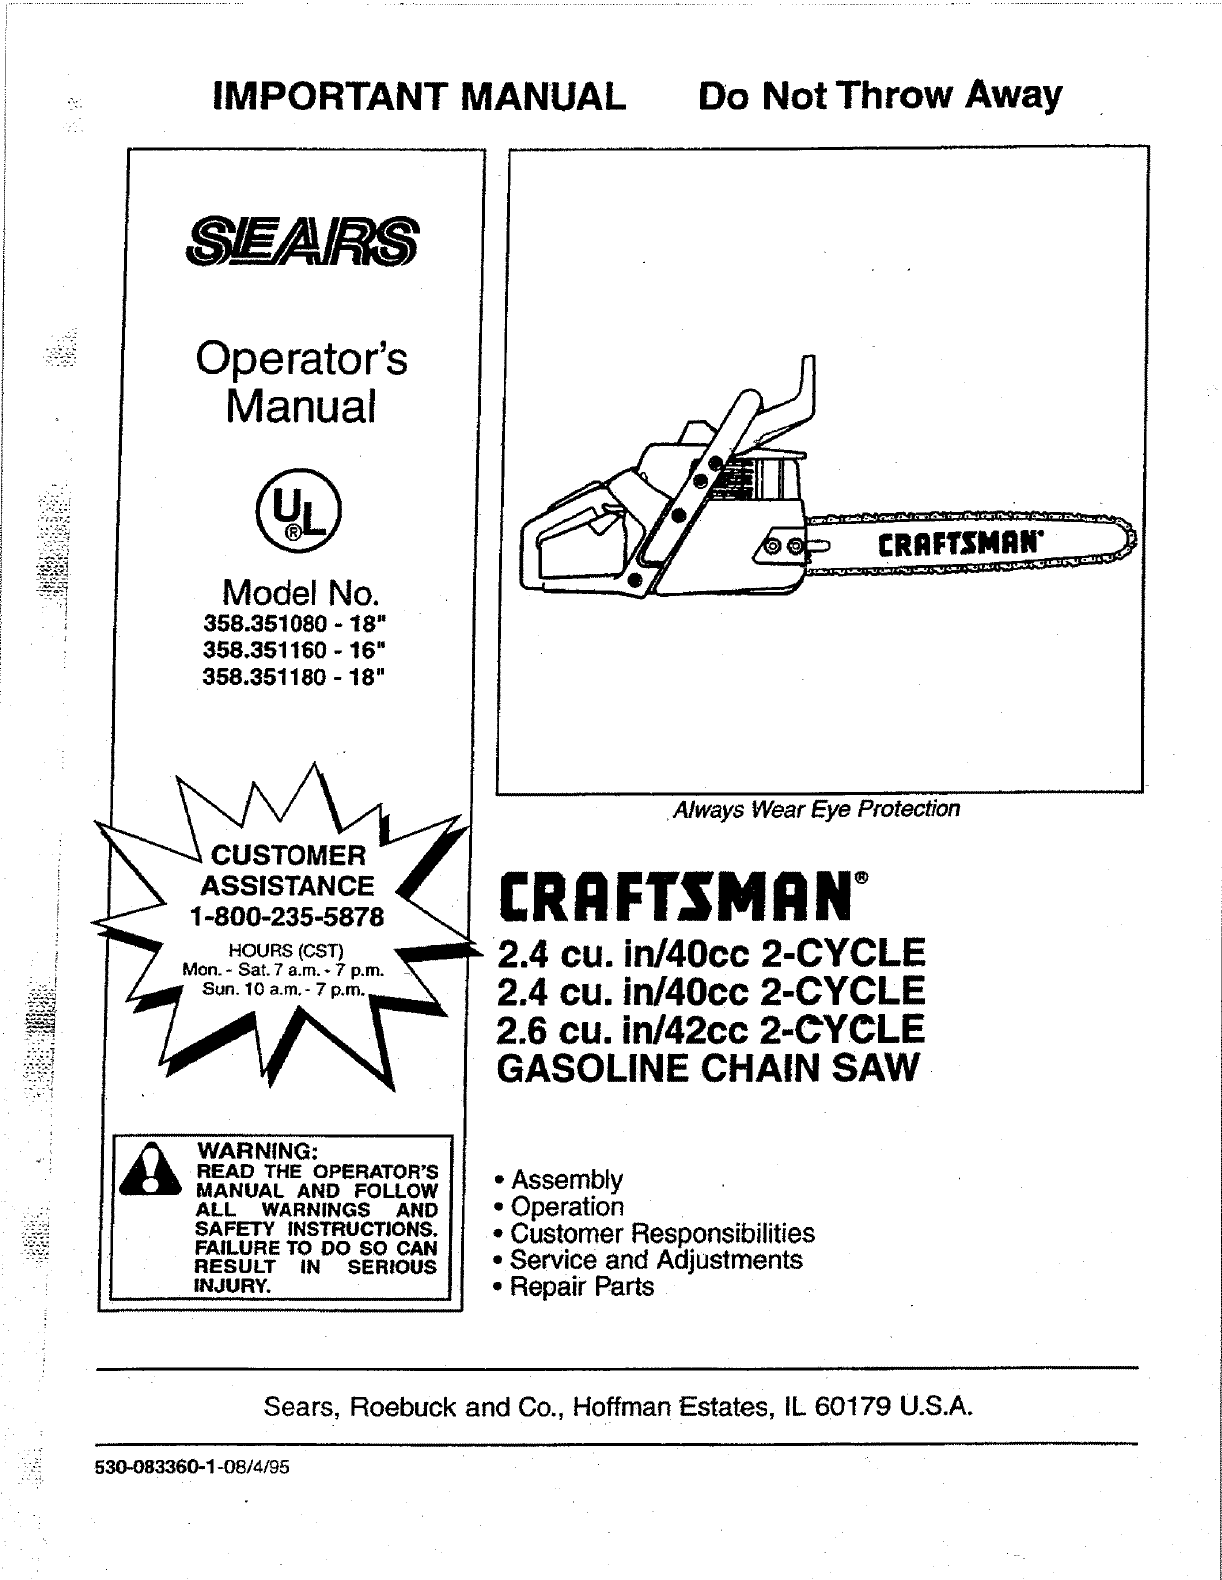 sears chainsaw 358 351160 16 user guide manualsonline com rh lawnandgarden manualsonline com Craftsman 36Cc Chainsaw Parts Diaphragm Craftsman Electric Chainsaw Model 358 Manual